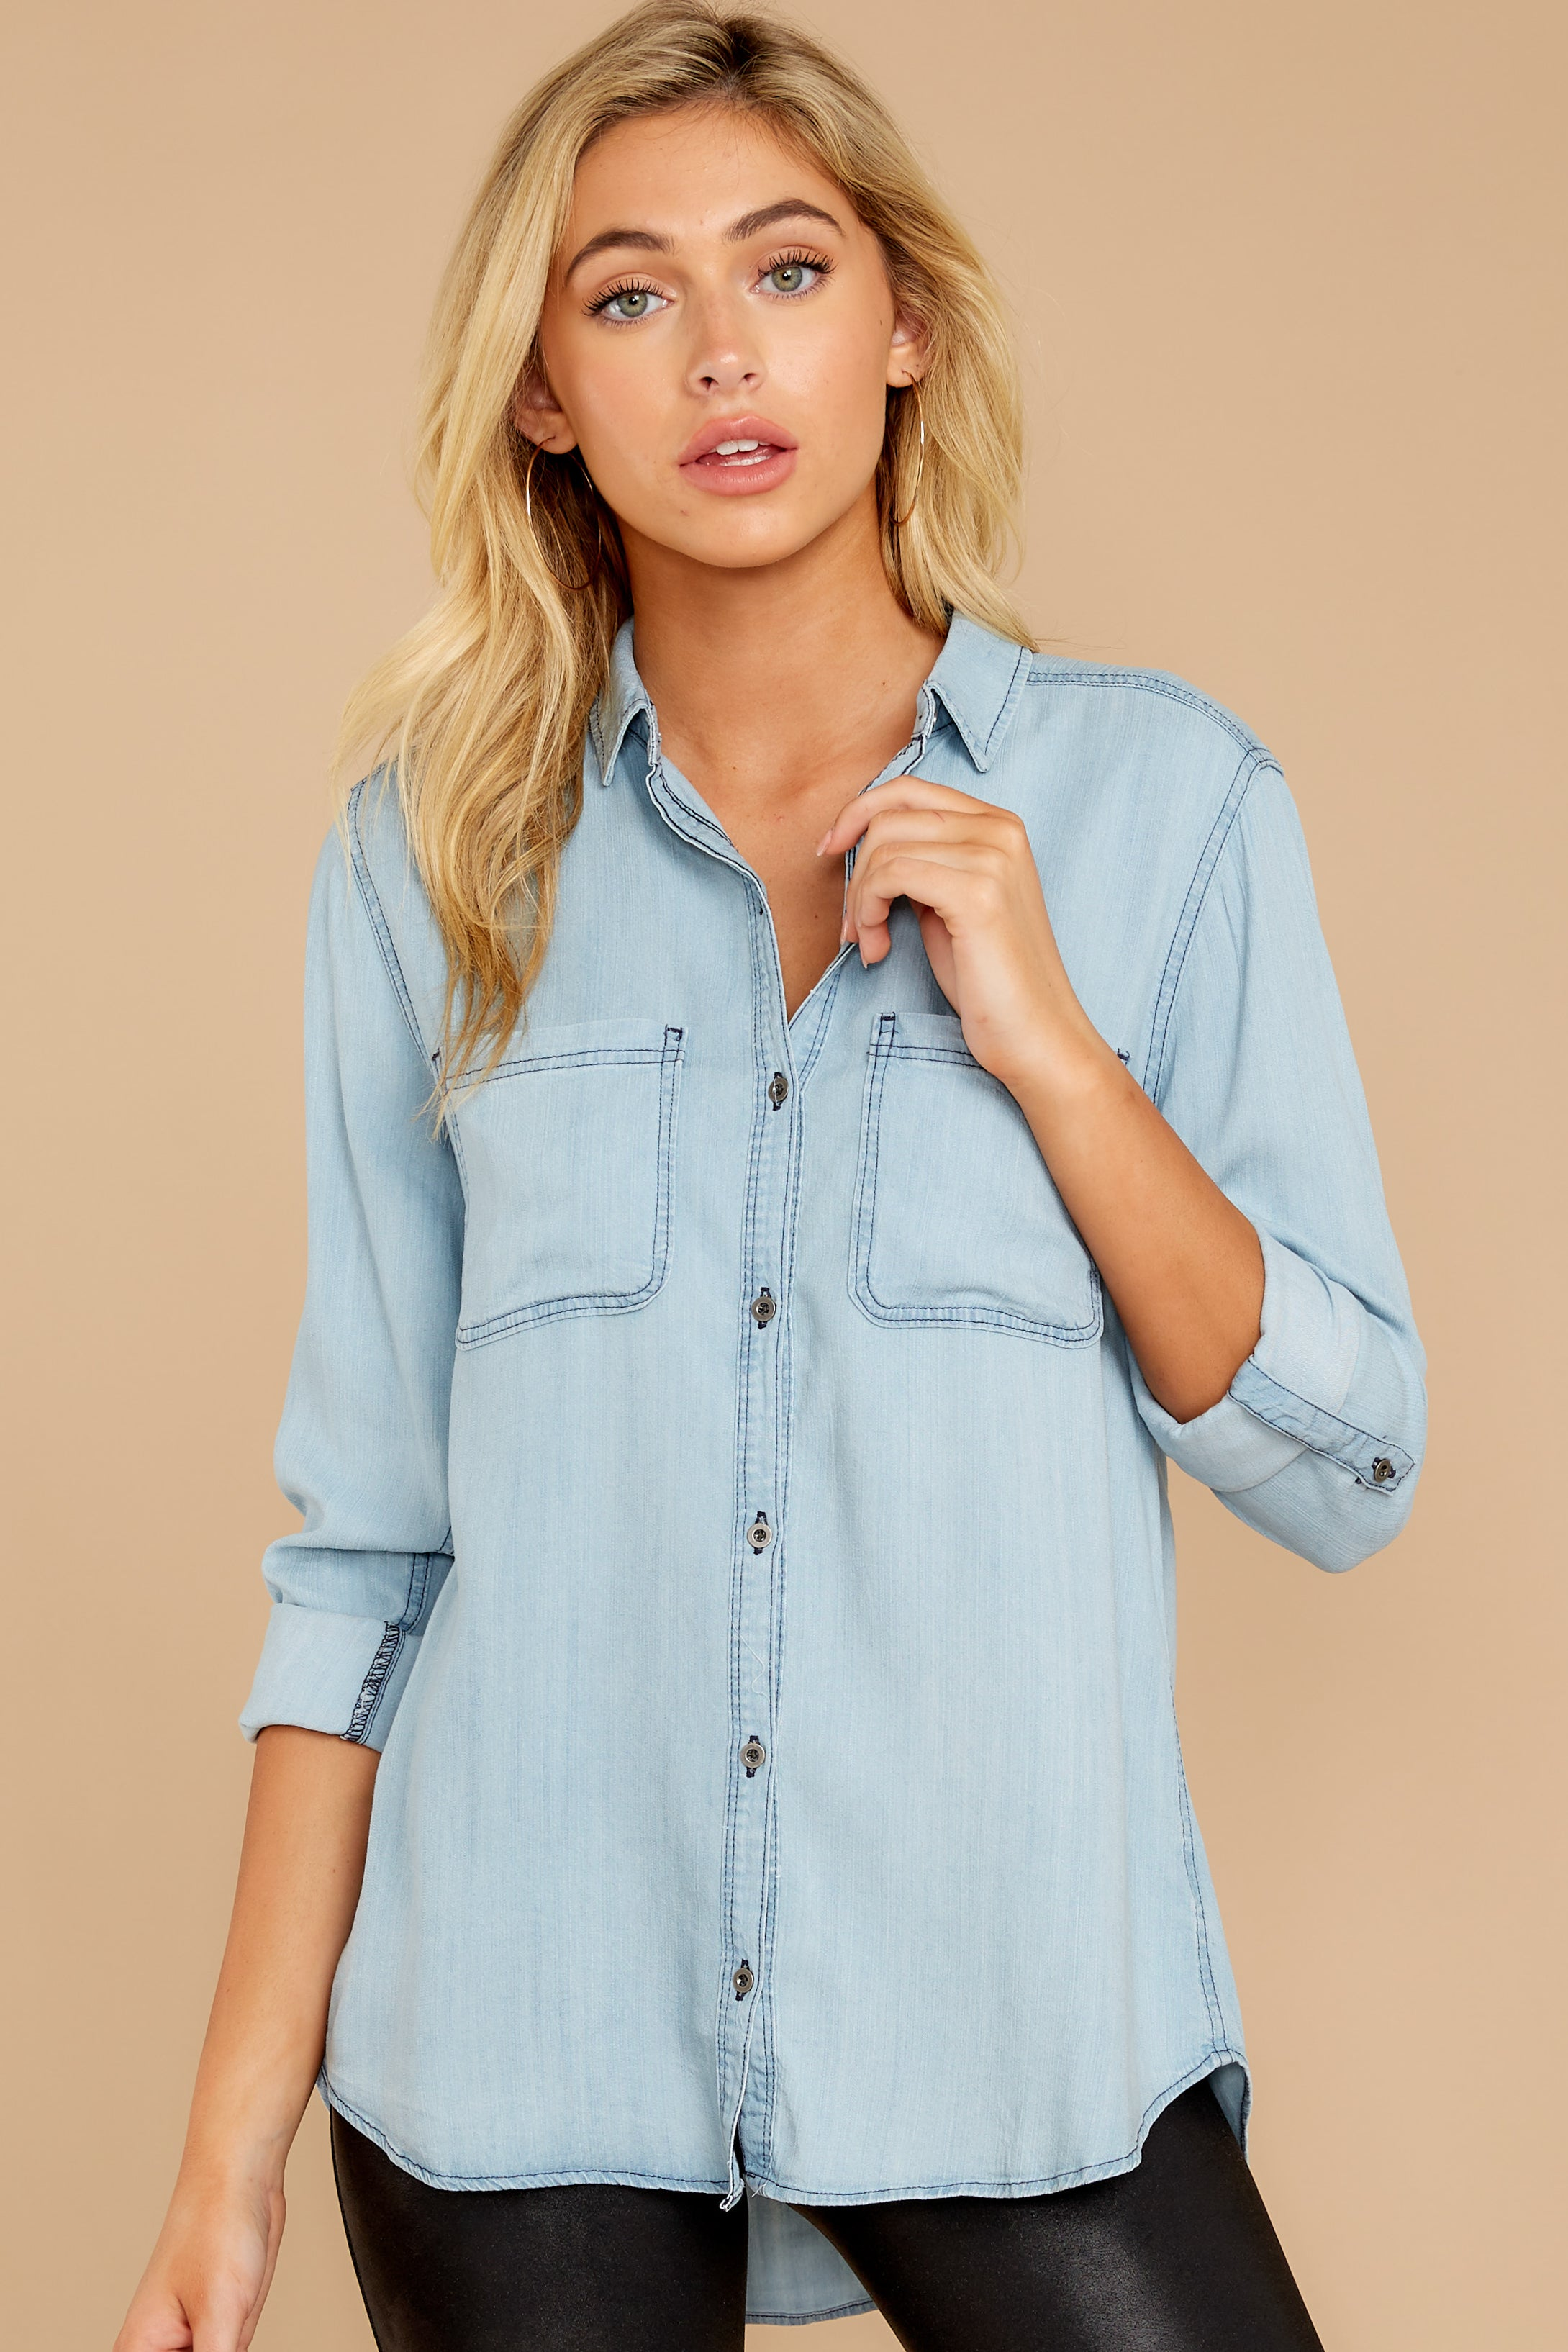 1 Wander Free Light Chambray Button Up Top at reddressboutique.com